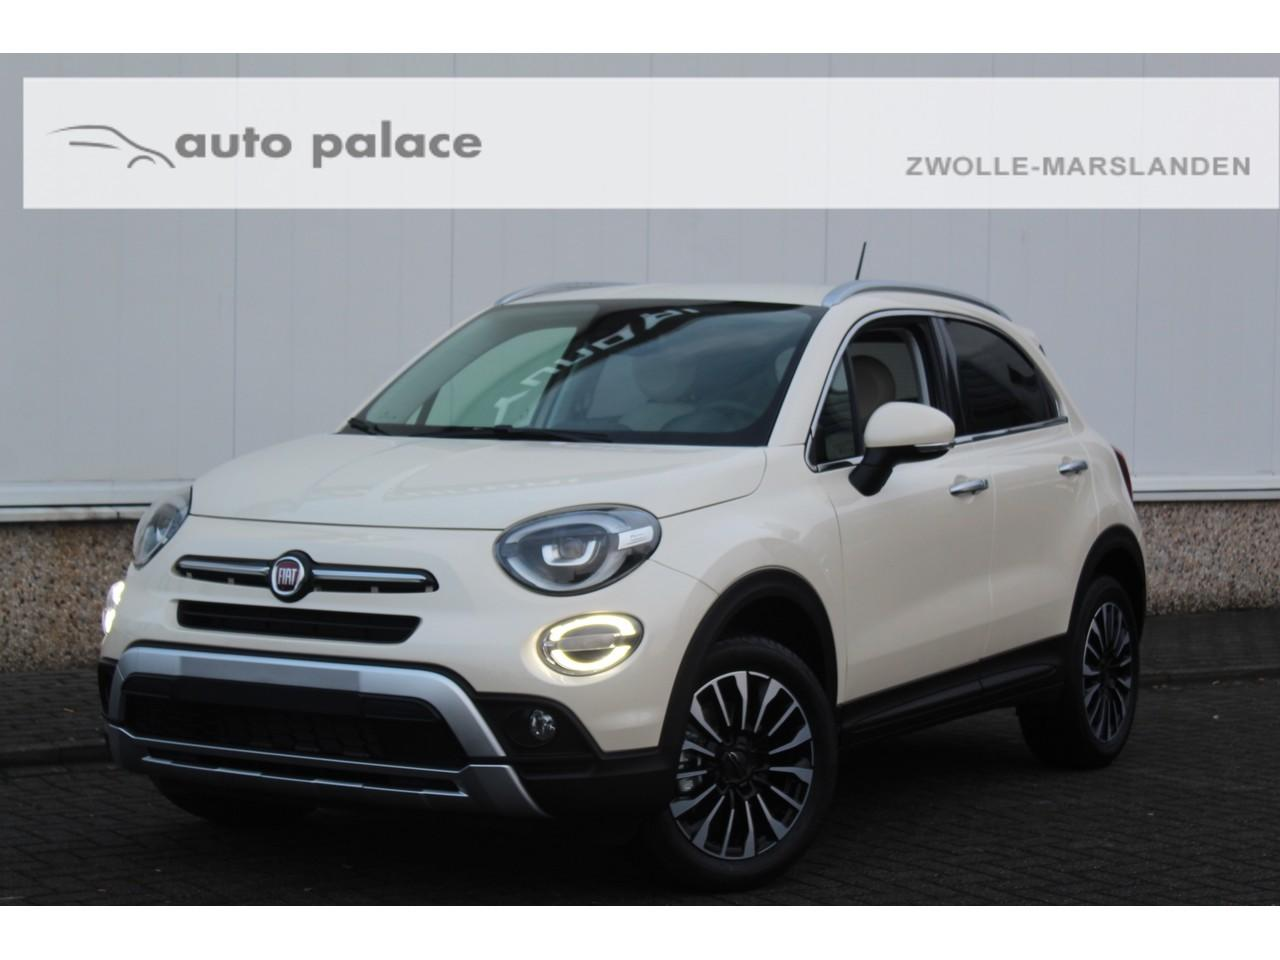 Fiat 500x 1.3 gse 150 pk dct city cross opening edition